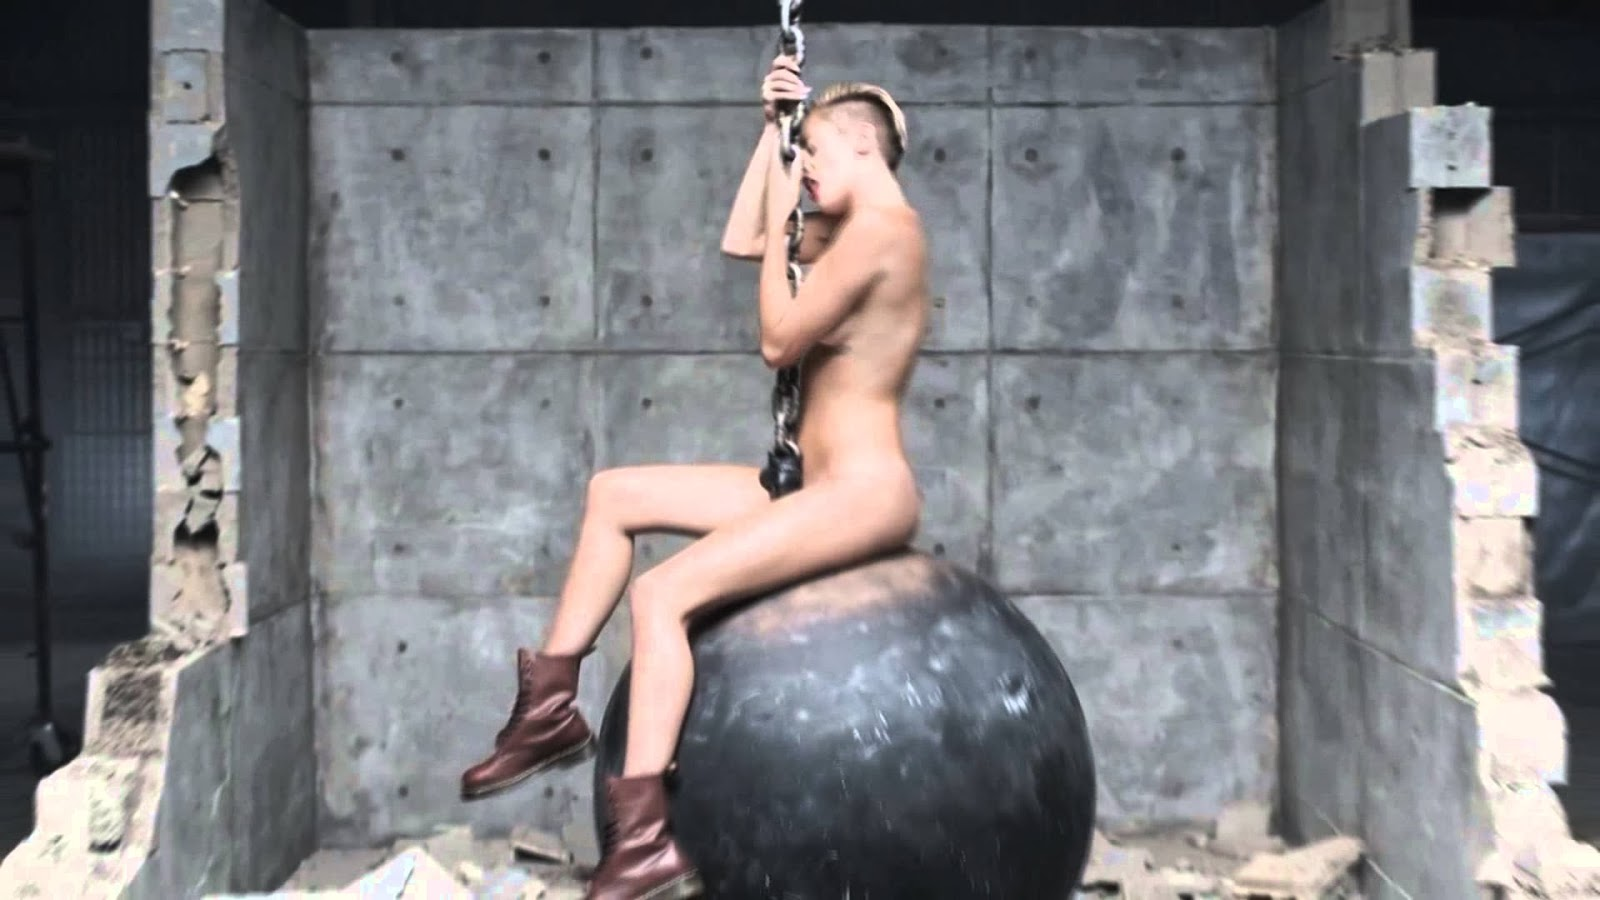 Top Miley Cyrus Wrecking Ball Video  Miley Cyrus Wrecking -1960